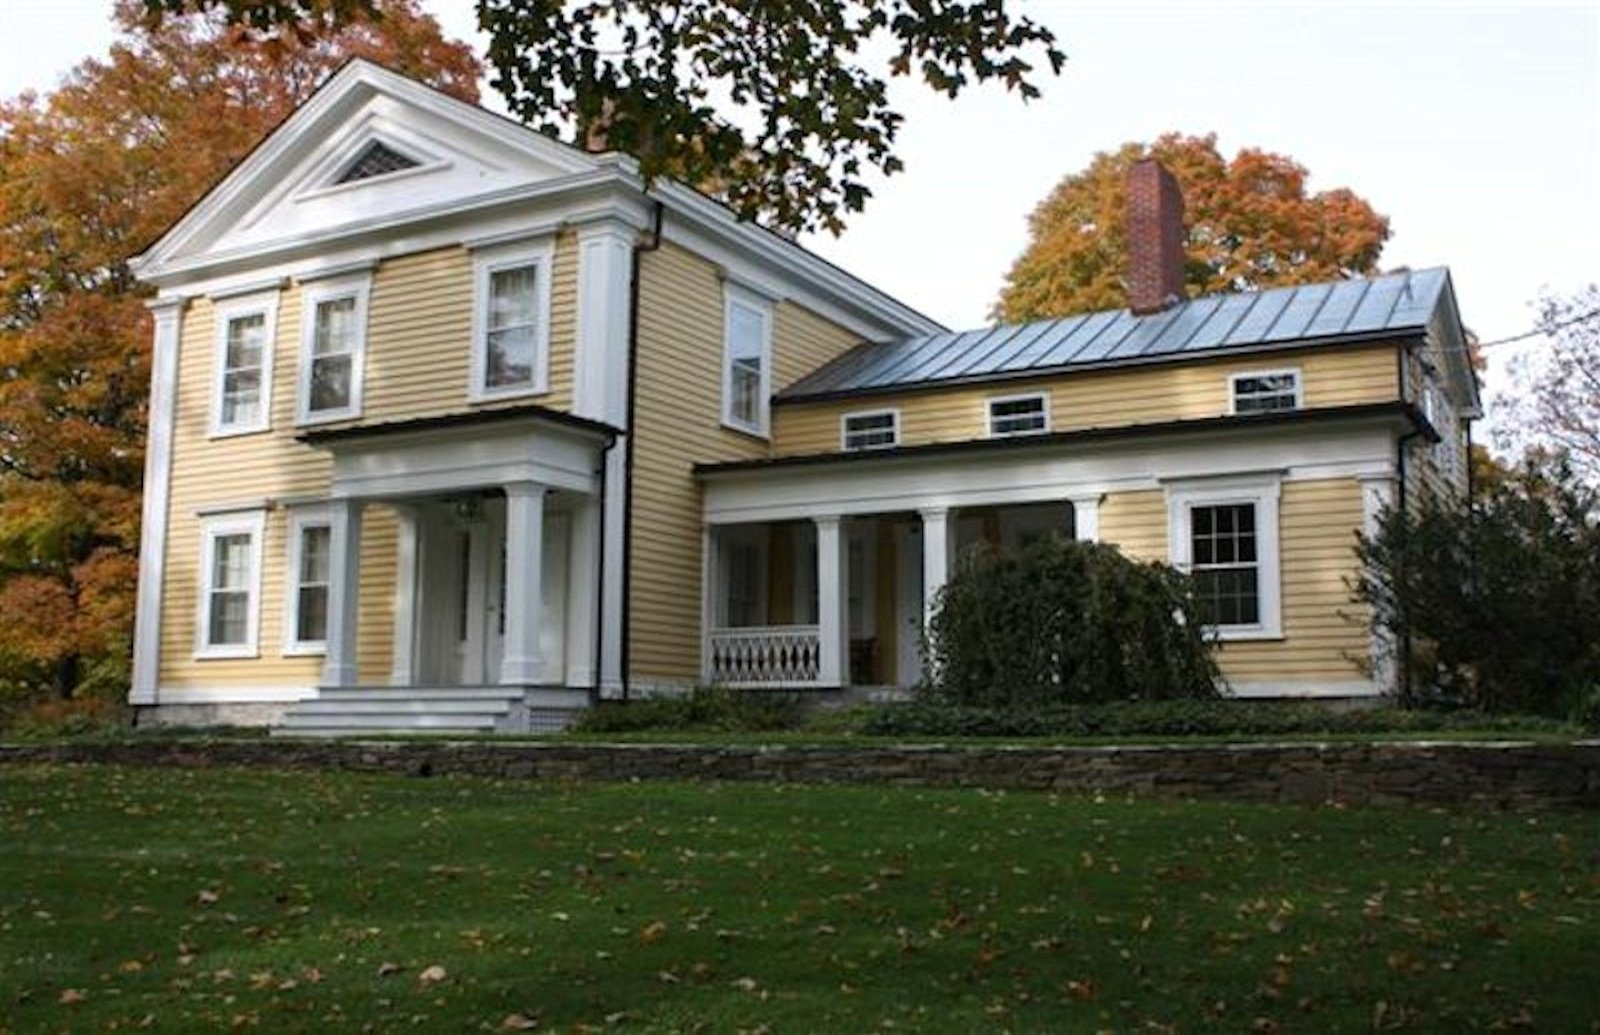 Maison unifamiliale pour l Vente à Samuel Huntting House 245 Conklin Hill Road Stanfordville, New York, 12545 États-Unis